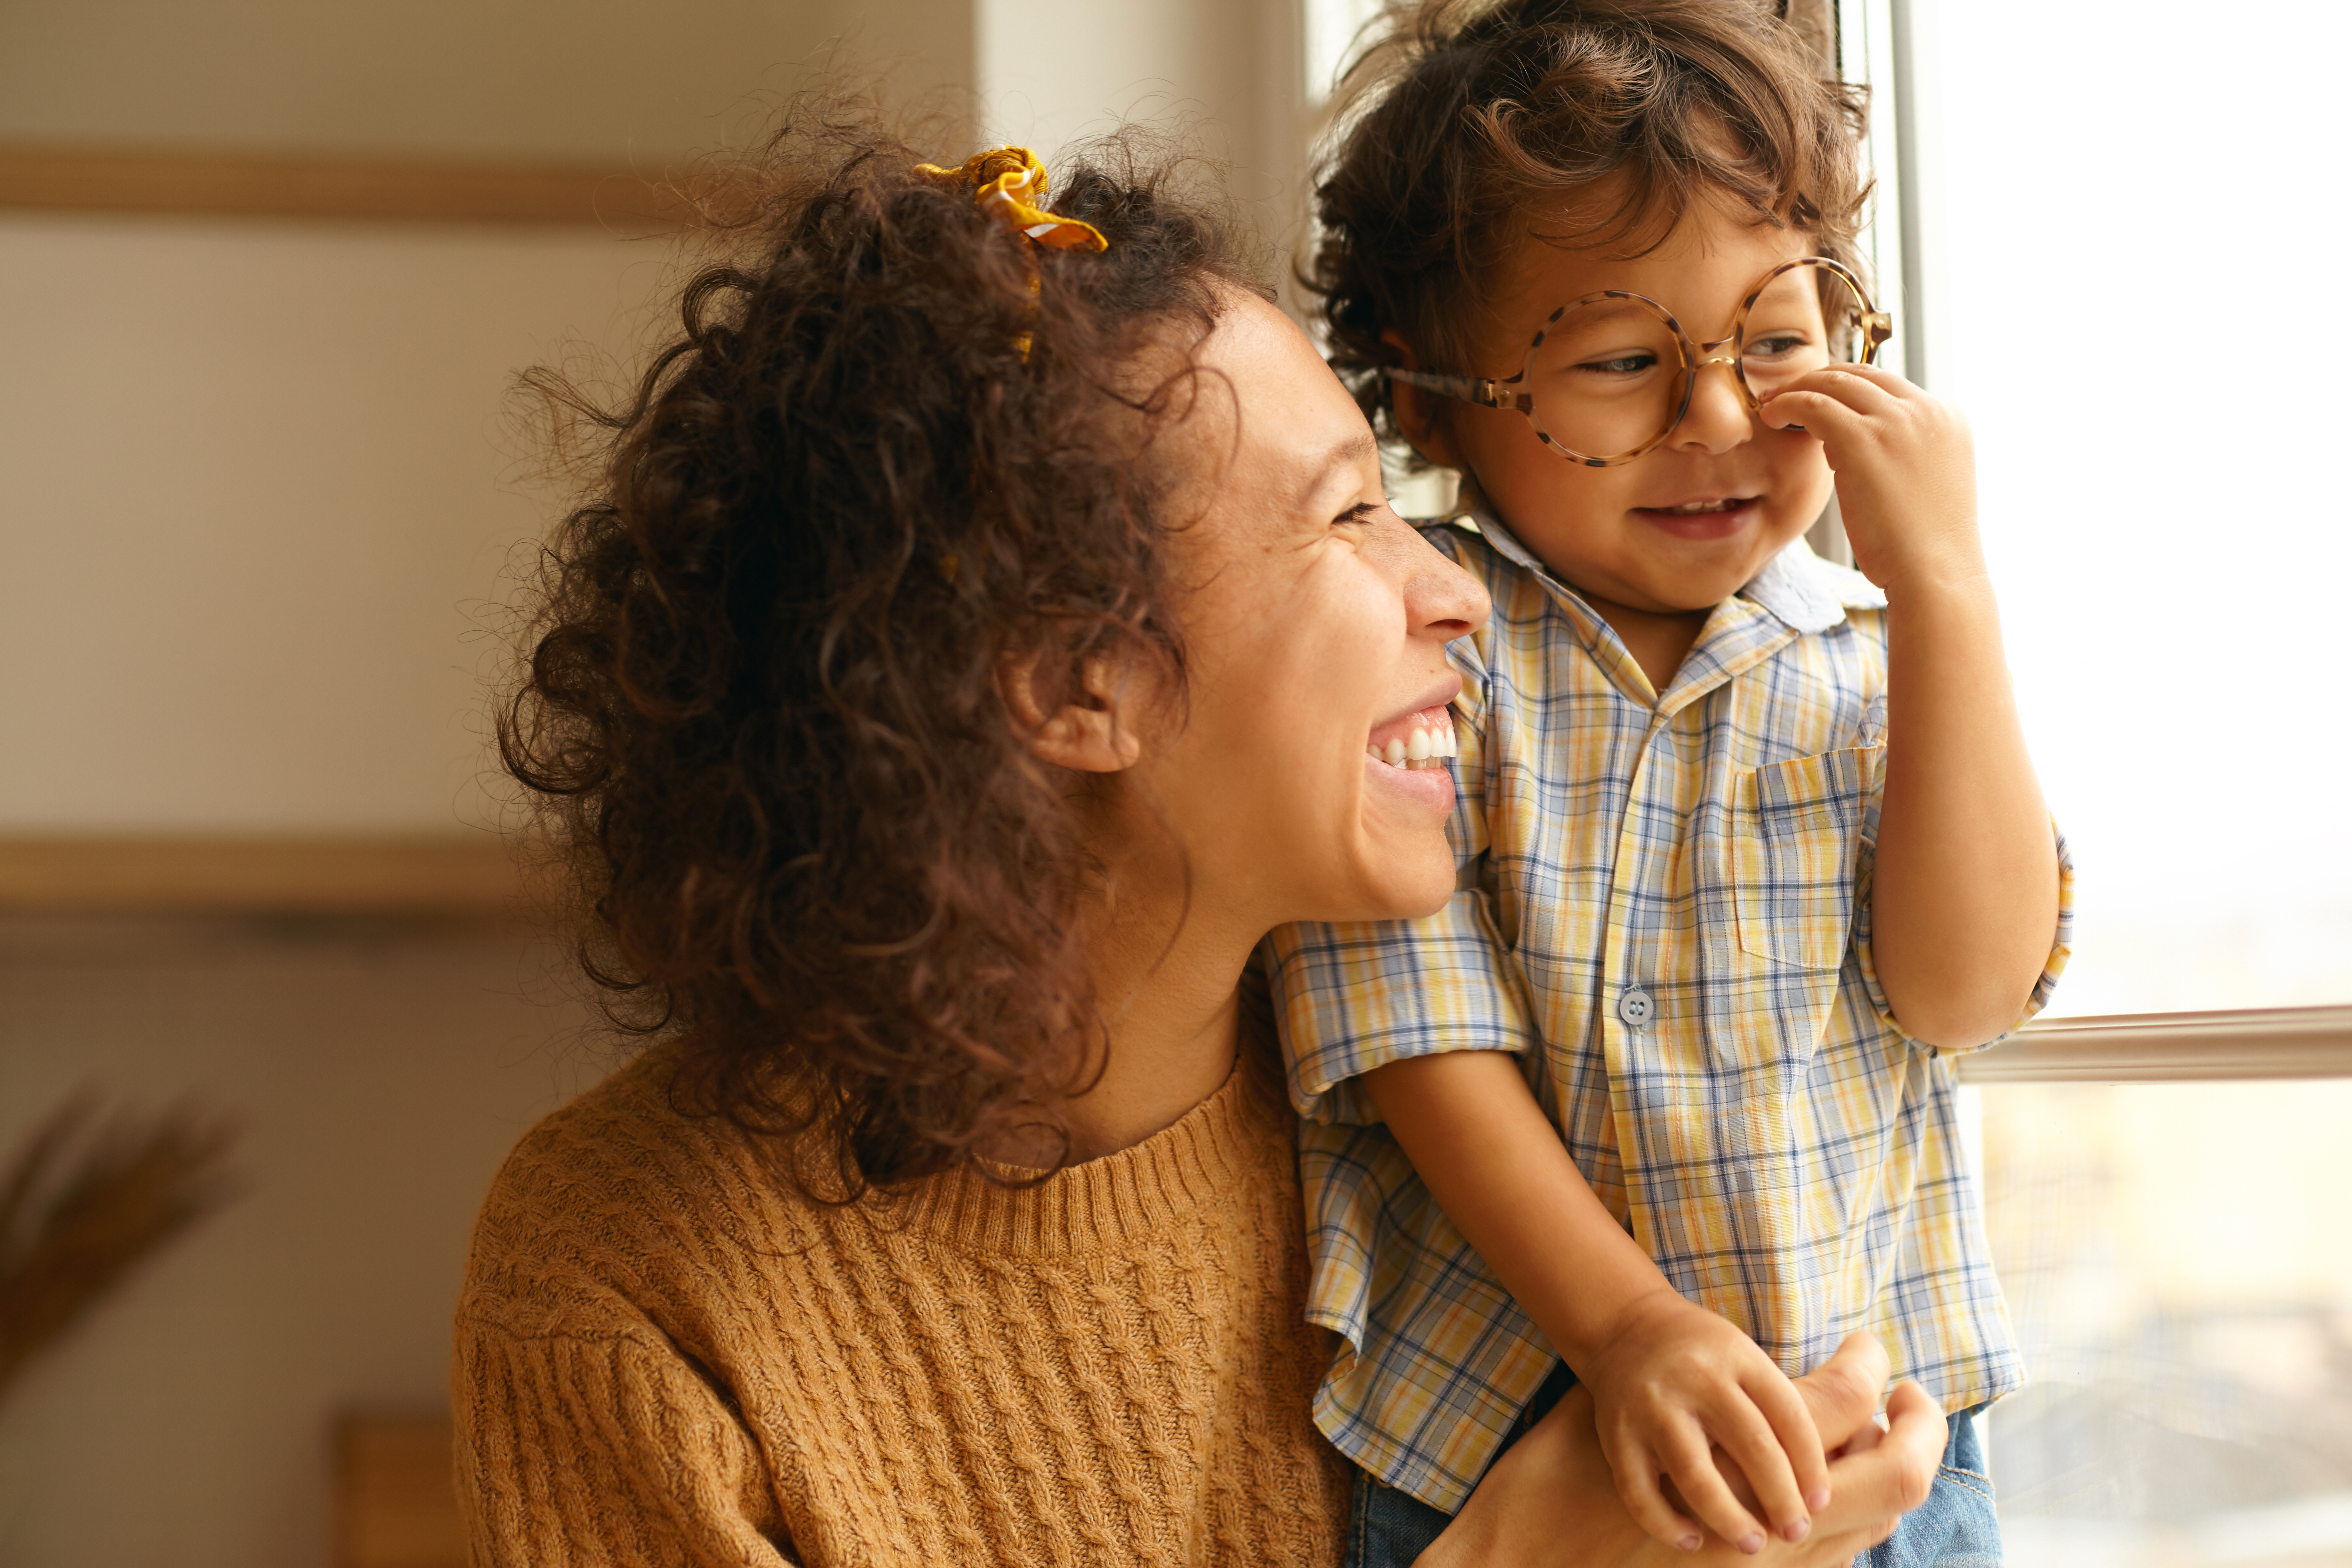 close-up-image-of-happy-young-wavy-haired-hispanic-female-posing-by-window-embracing-baby-son-cute-three-year-old-boy-wearing-round-eyeglasses-spending-day-at-home-family-and-relationships